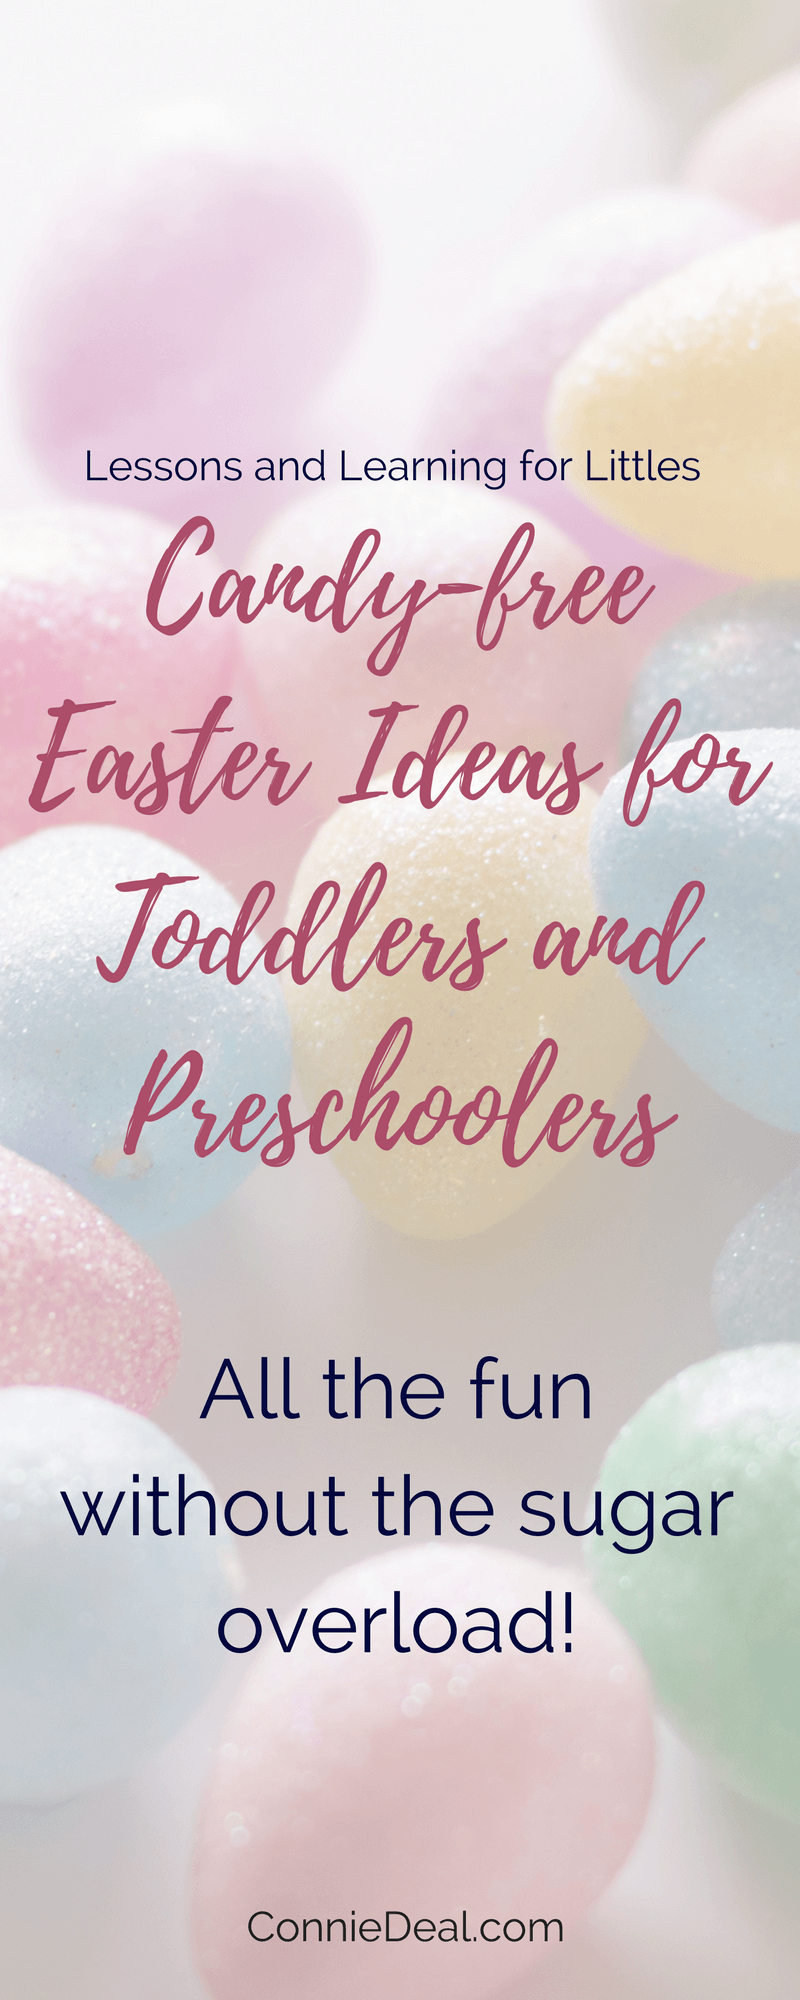 Wondering what to fill your toddler's Easter eggs with? Looking for candy-free options for #Easter or #Christmas stockings? Check out this list of fun ideas for #EasterBaskets and #EasterEggs for toddlers and preschoolers from Lessons and Learning for Littles.